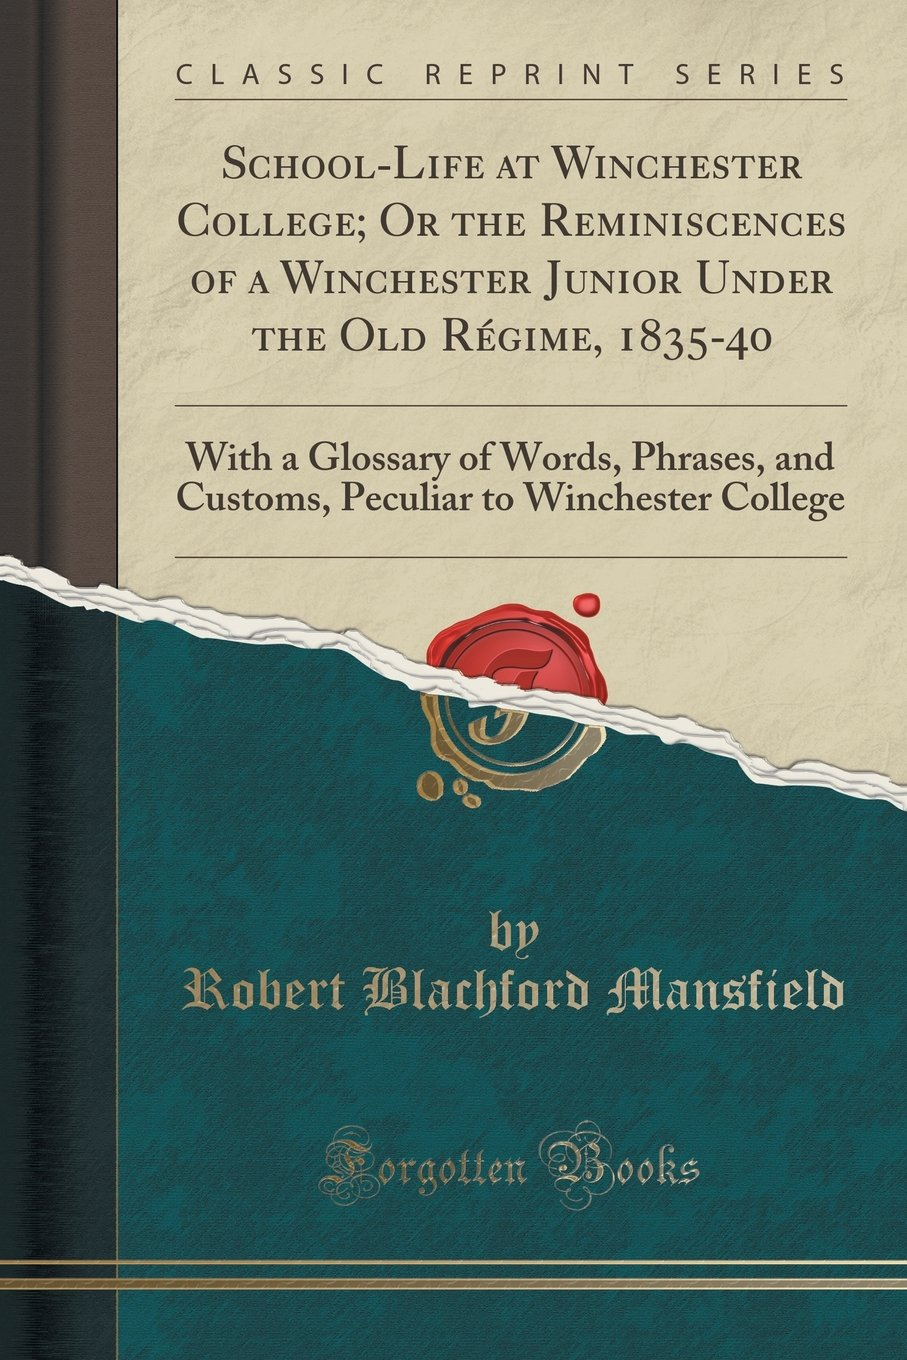 Read Online School-Life at Winchester College; Or the Reminiscences of a Winchester Junior Under the Old Régime, 1835-40: With a Glossary of Words, Phrases, and ... to Winchester College (Classic Reprint) ebook